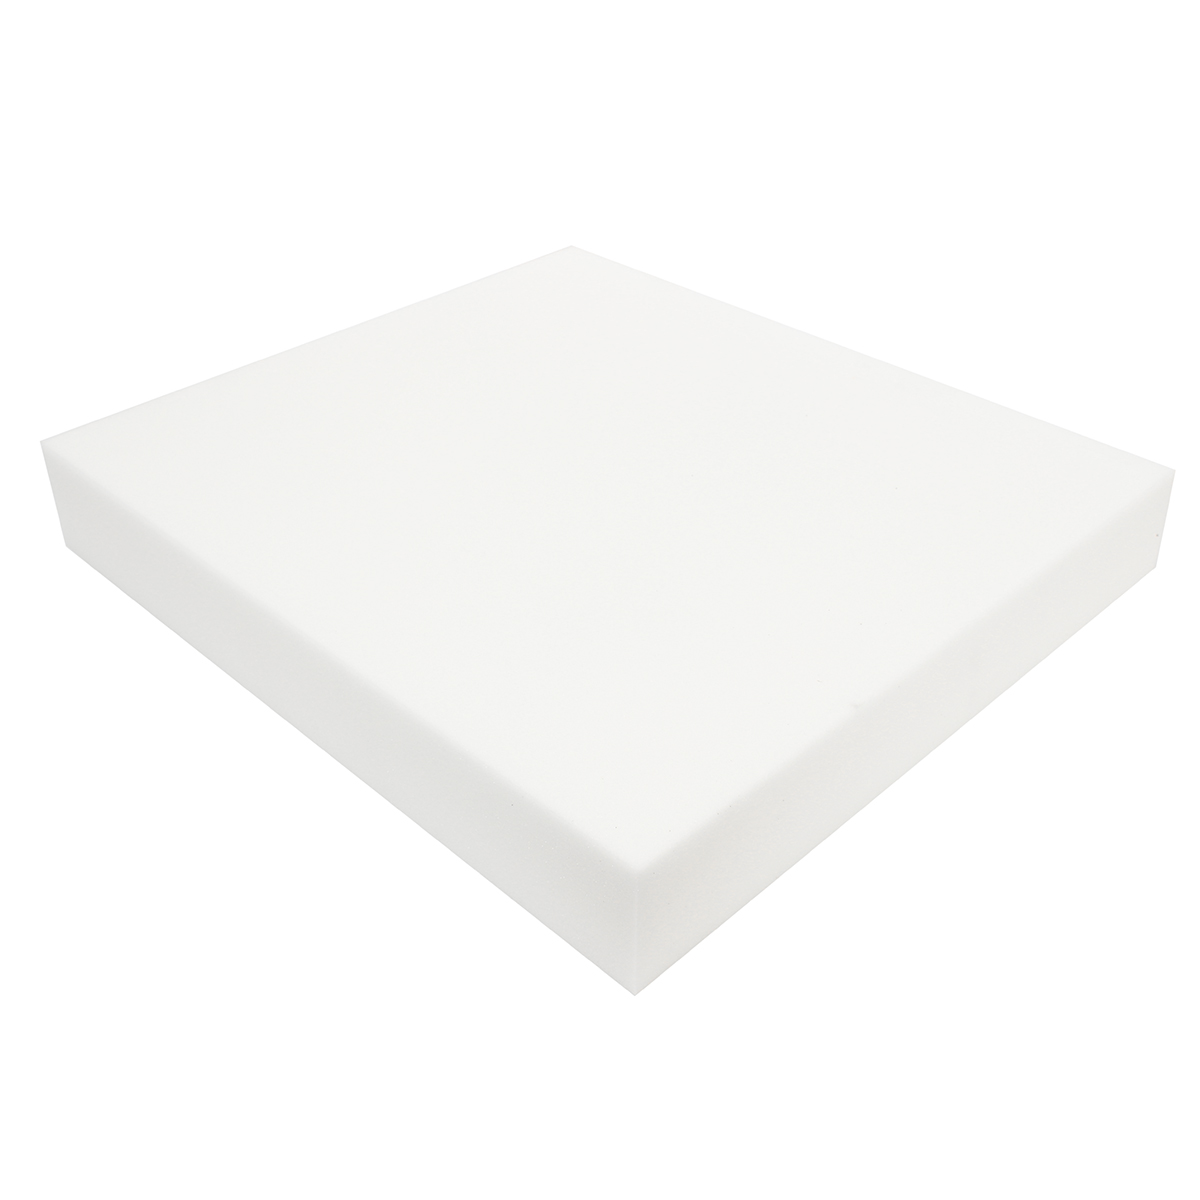 sofa seat cushion foam india sofaore knoxville other home decor 55x55cm high density upholstery